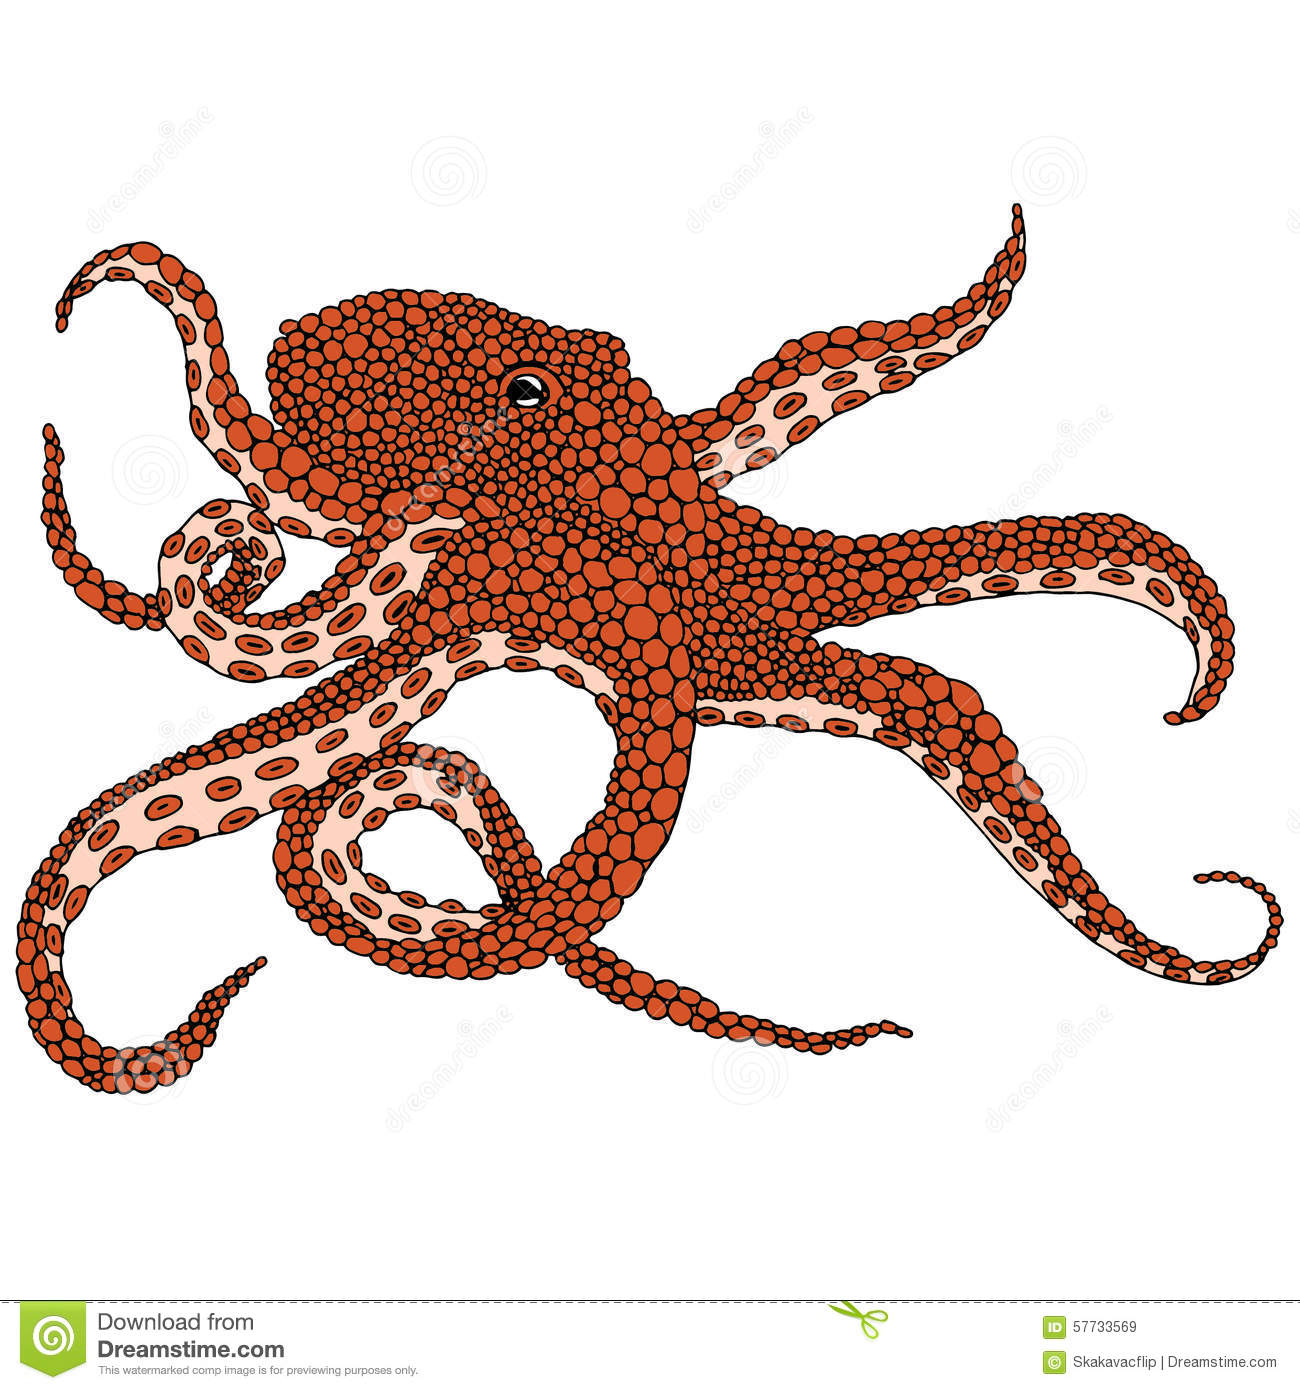 Octopus Illustration Octopus Vulgaris On White Background